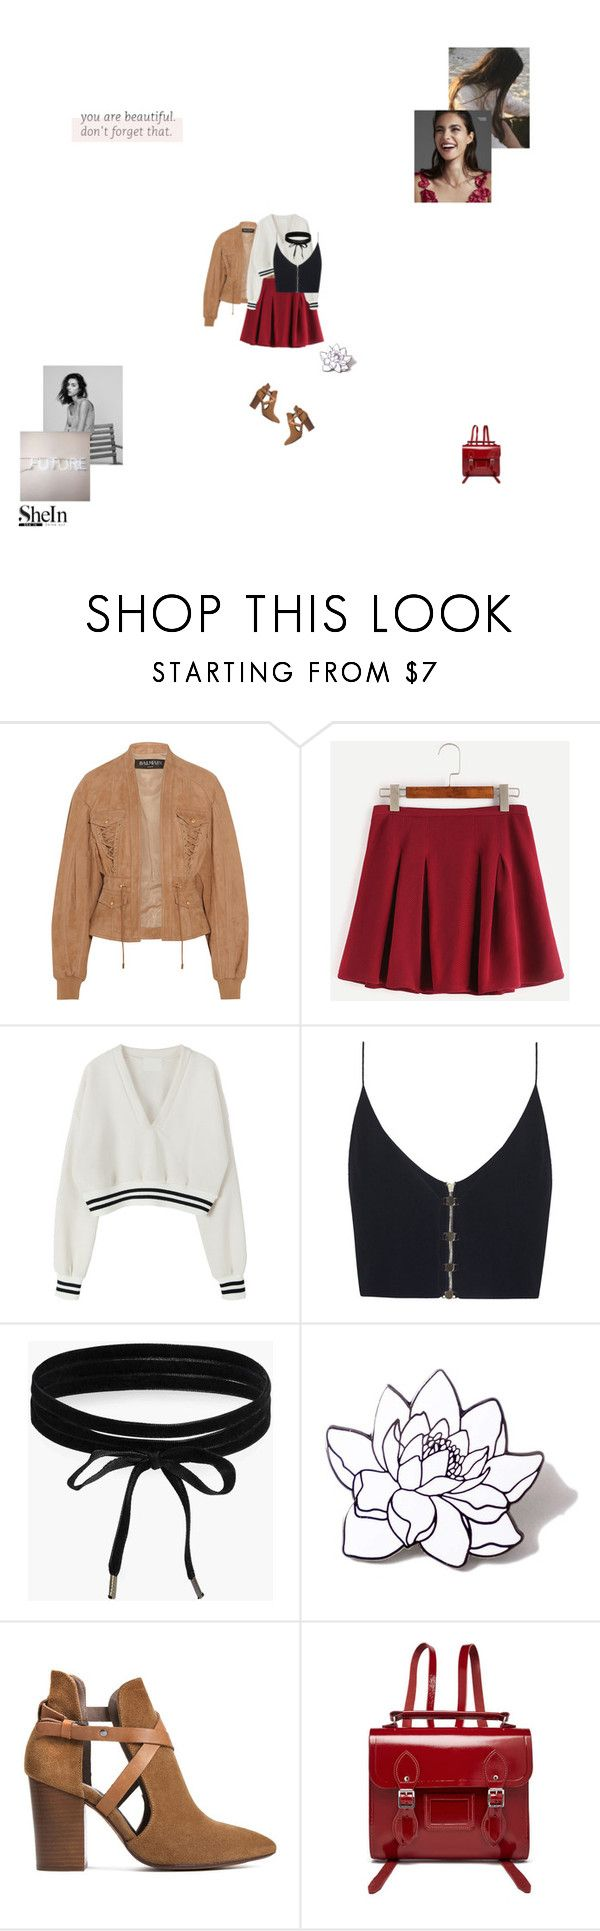 """""""you are beautiful"""" by young-grasshopper ❤ liked on Polyvore featuring Balmain, Rocio, Zimmermann, Boohoo, PINTRILL, H London, The Cambridge Satchel Company, Sweater, Sheinside and choker"""